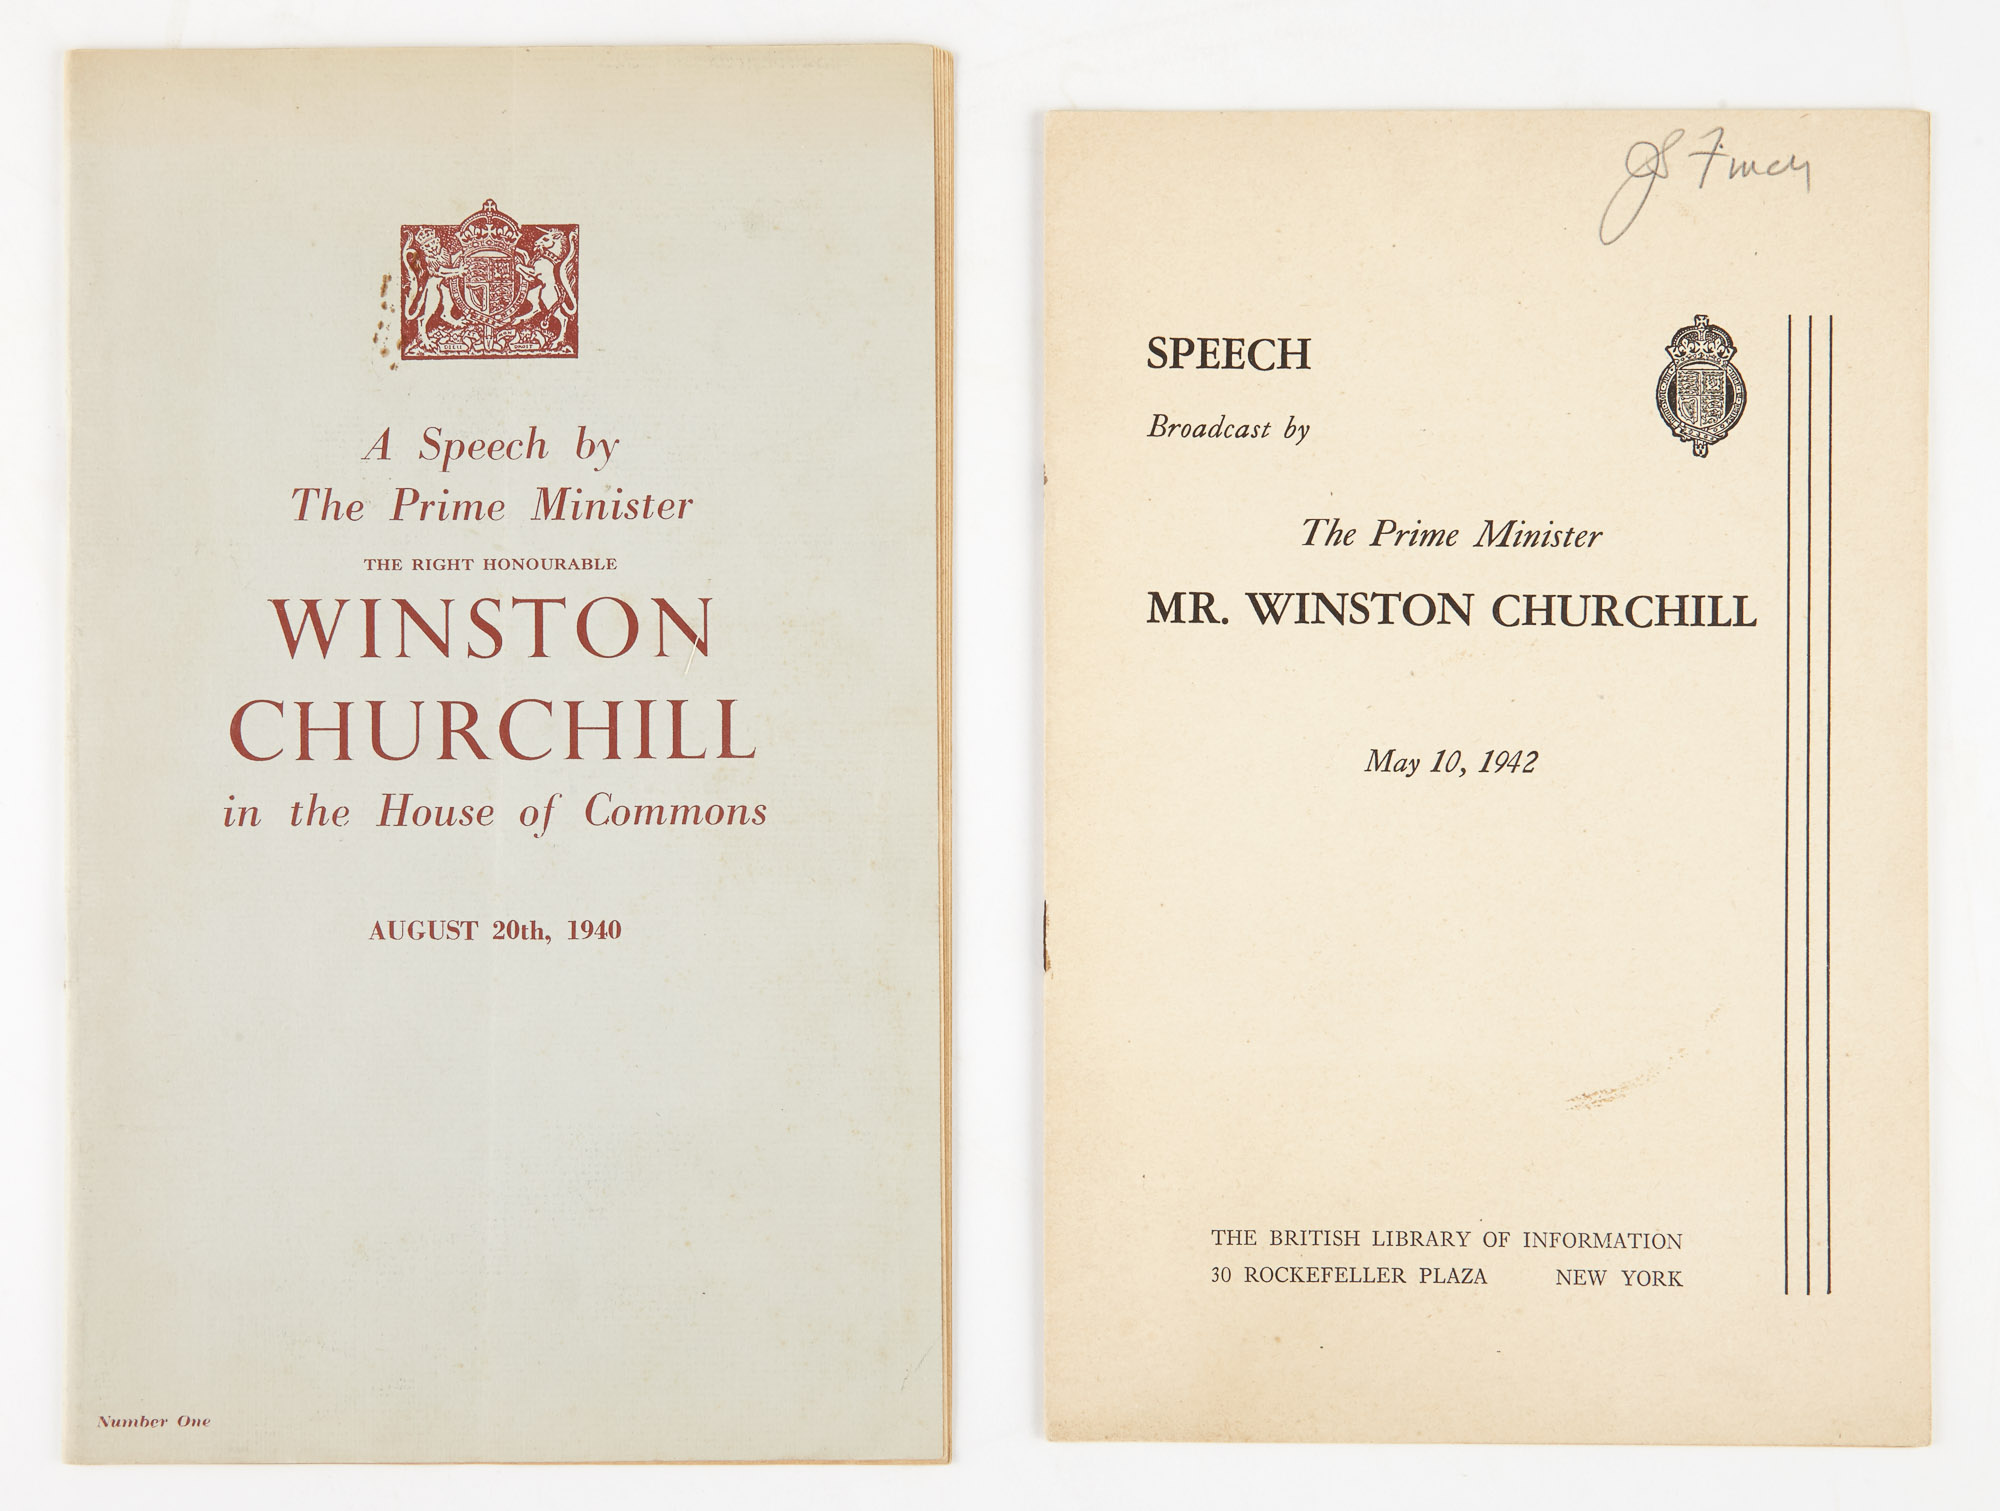 Lot image - CHURCHILL, WINSTON, Sir. A Speech by the Prime Minister The Right Honourable Winston Churchill in the House of Commons August 20th, 1940.